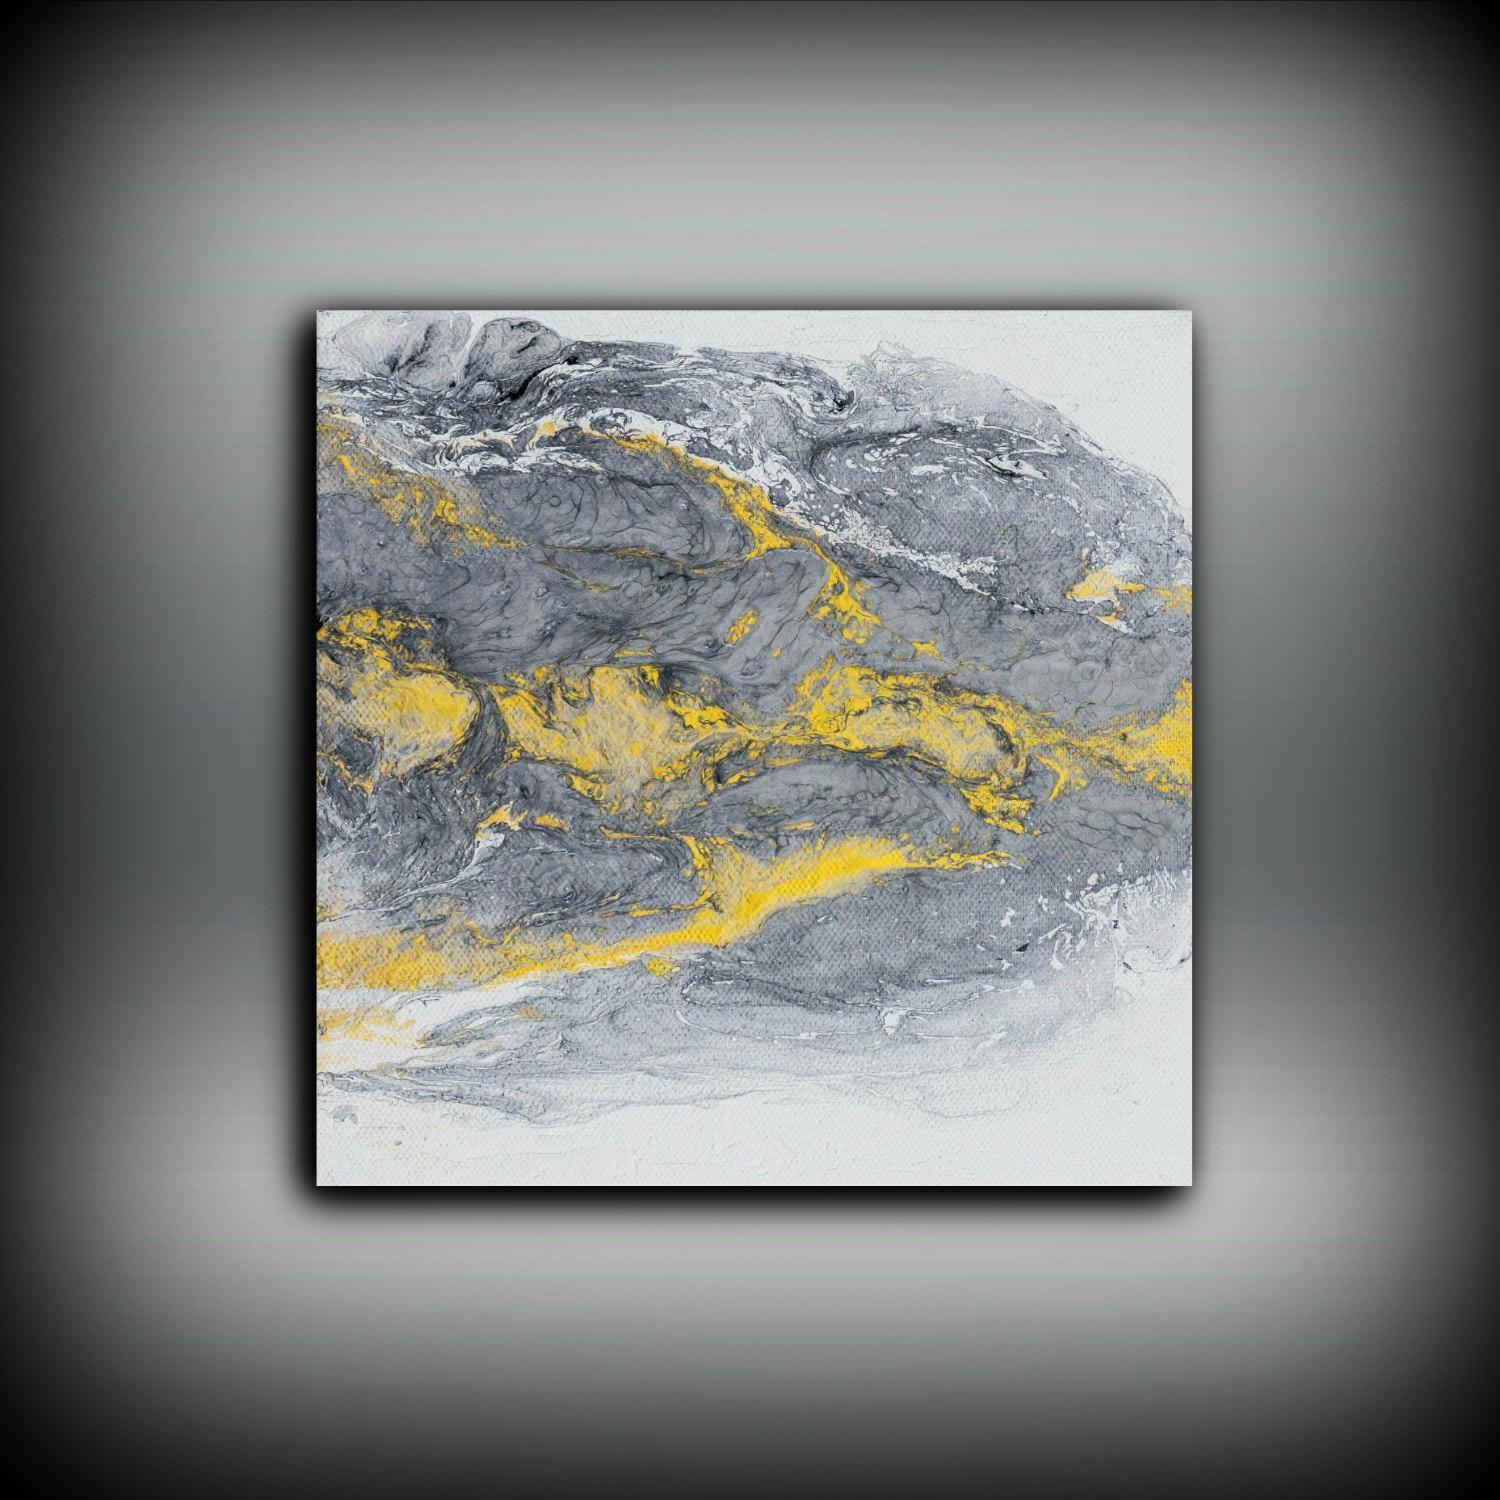 Art Painting Acrylic Paintings Abstract Small Wall Art Canvas Gold For Small Canvas Wall Art (Image 2 of 20)